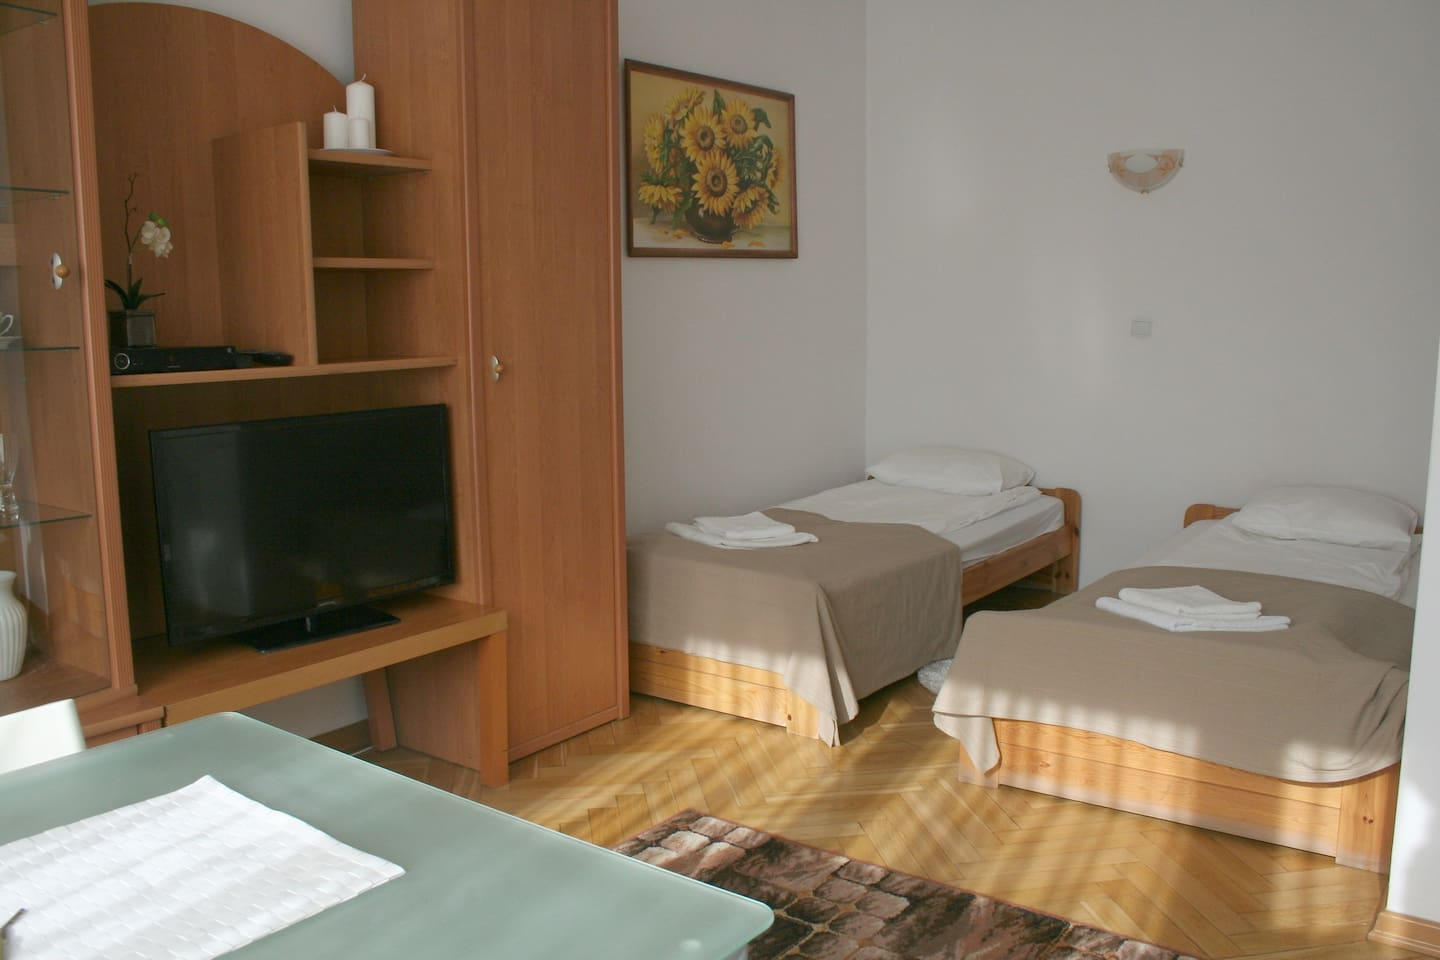 Spacious rooms and comfortable beds